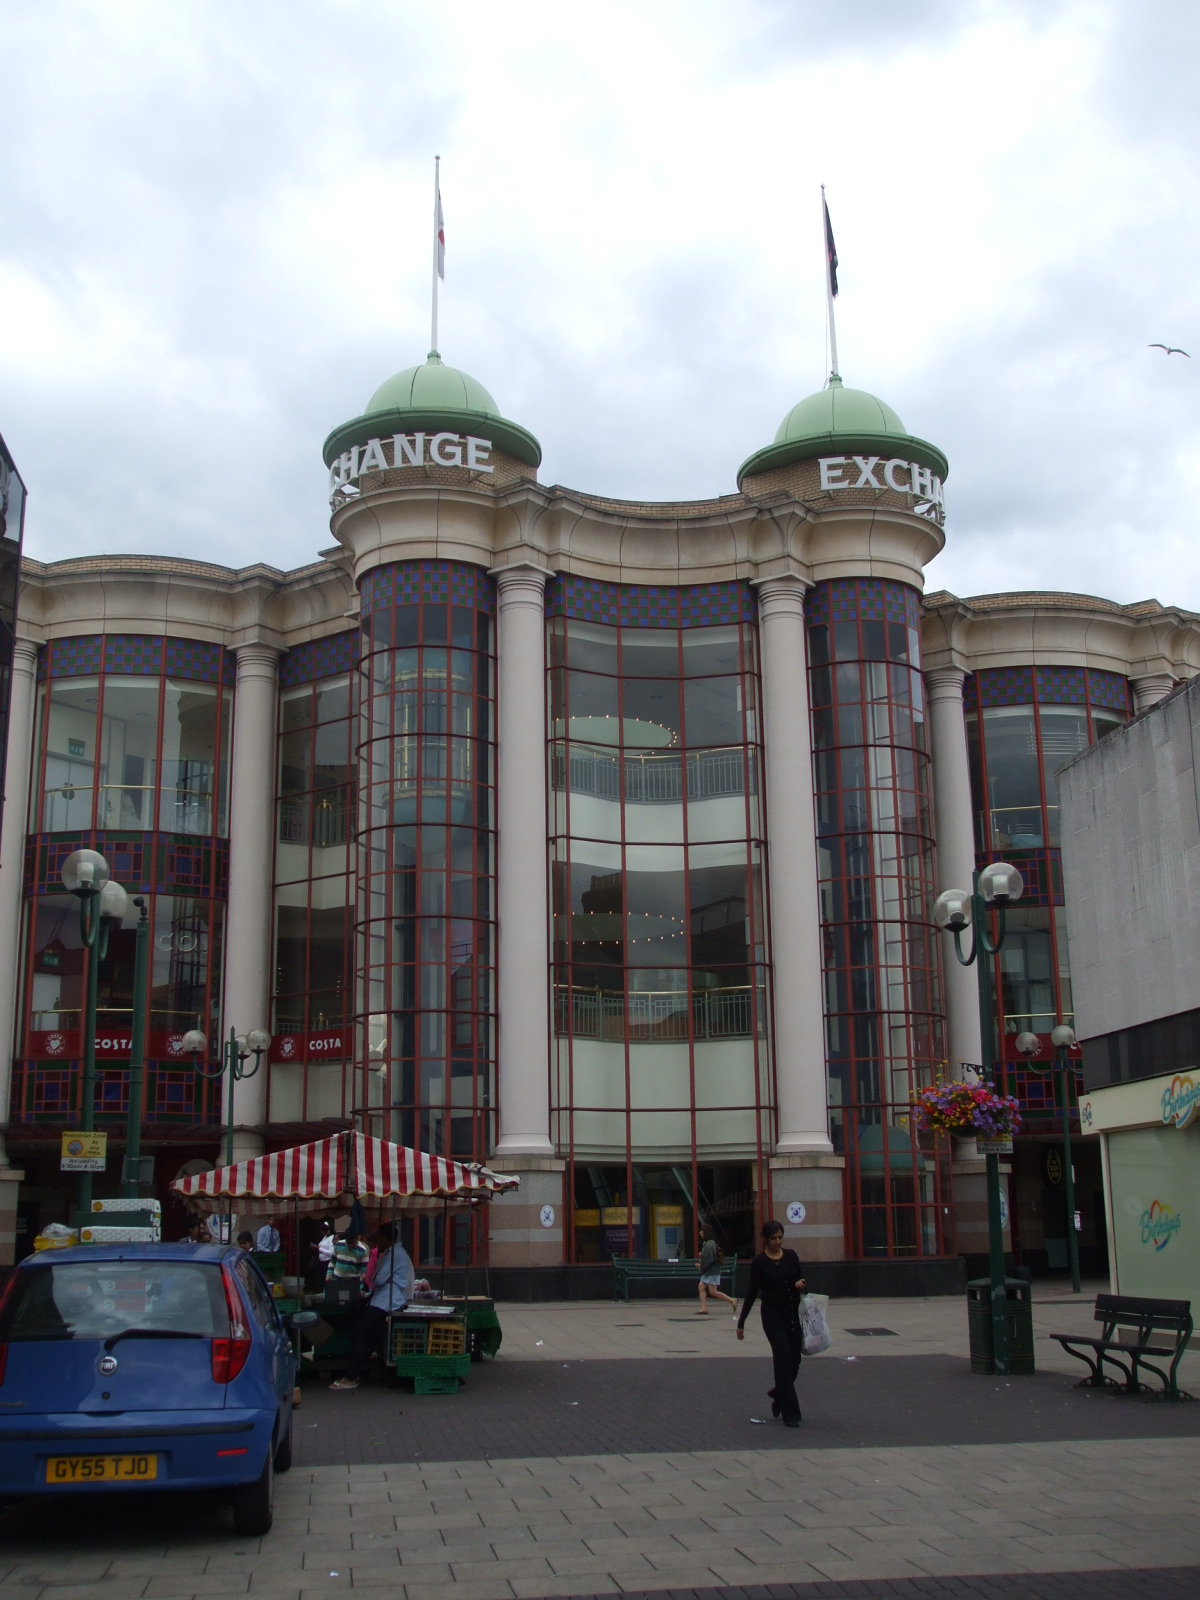 File:Ilford Exchange Shopping Centre.JPG - Wikipedia